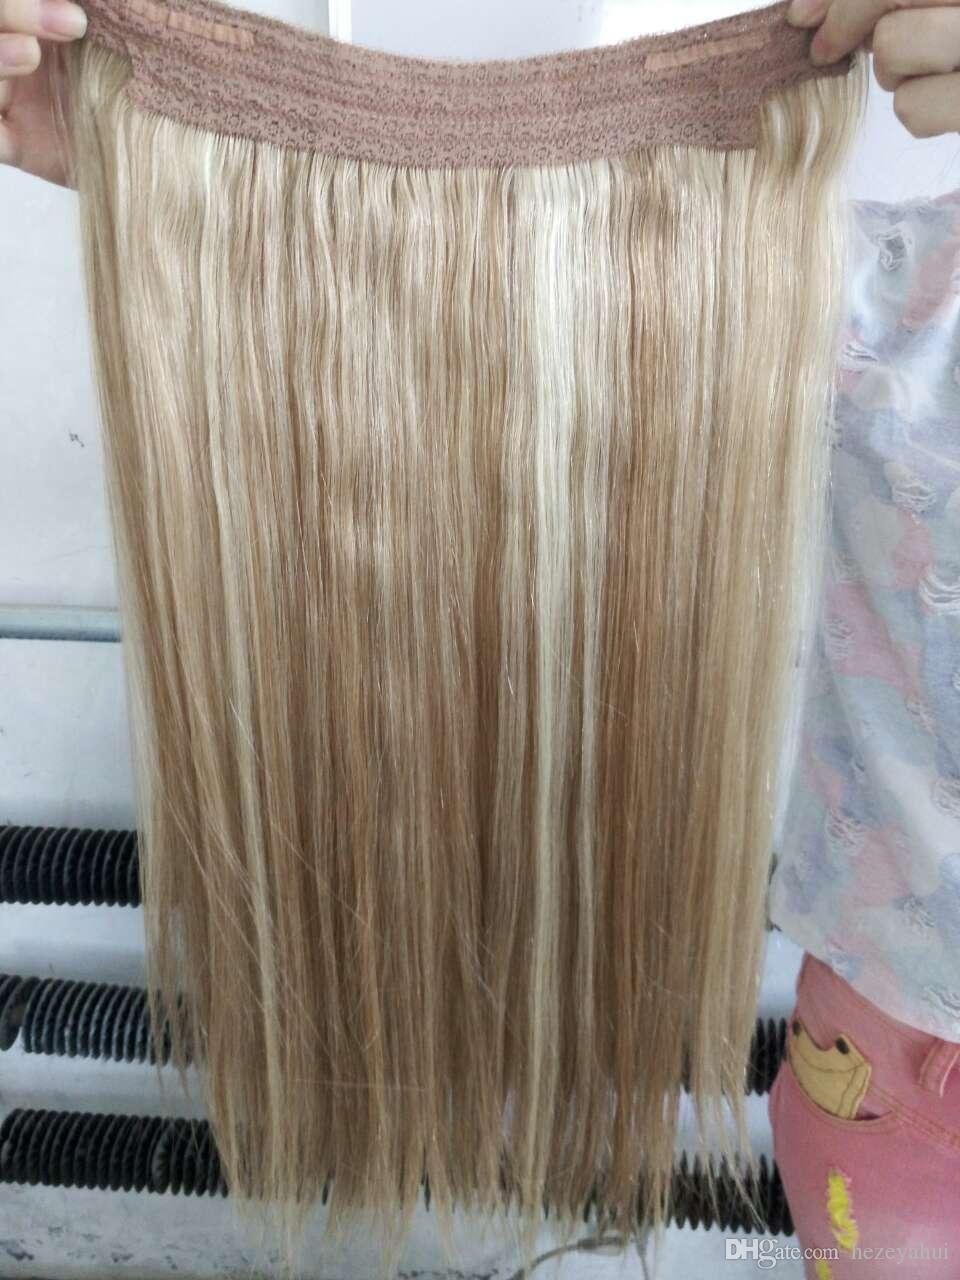 Cheap double drawn indian remy hair no clips halo flip in hair double drawn indian remy hair no clips halo flip in hair extension easy fish line human hair weaving blonde mixed color 27613 pmusecretfo Choice Image